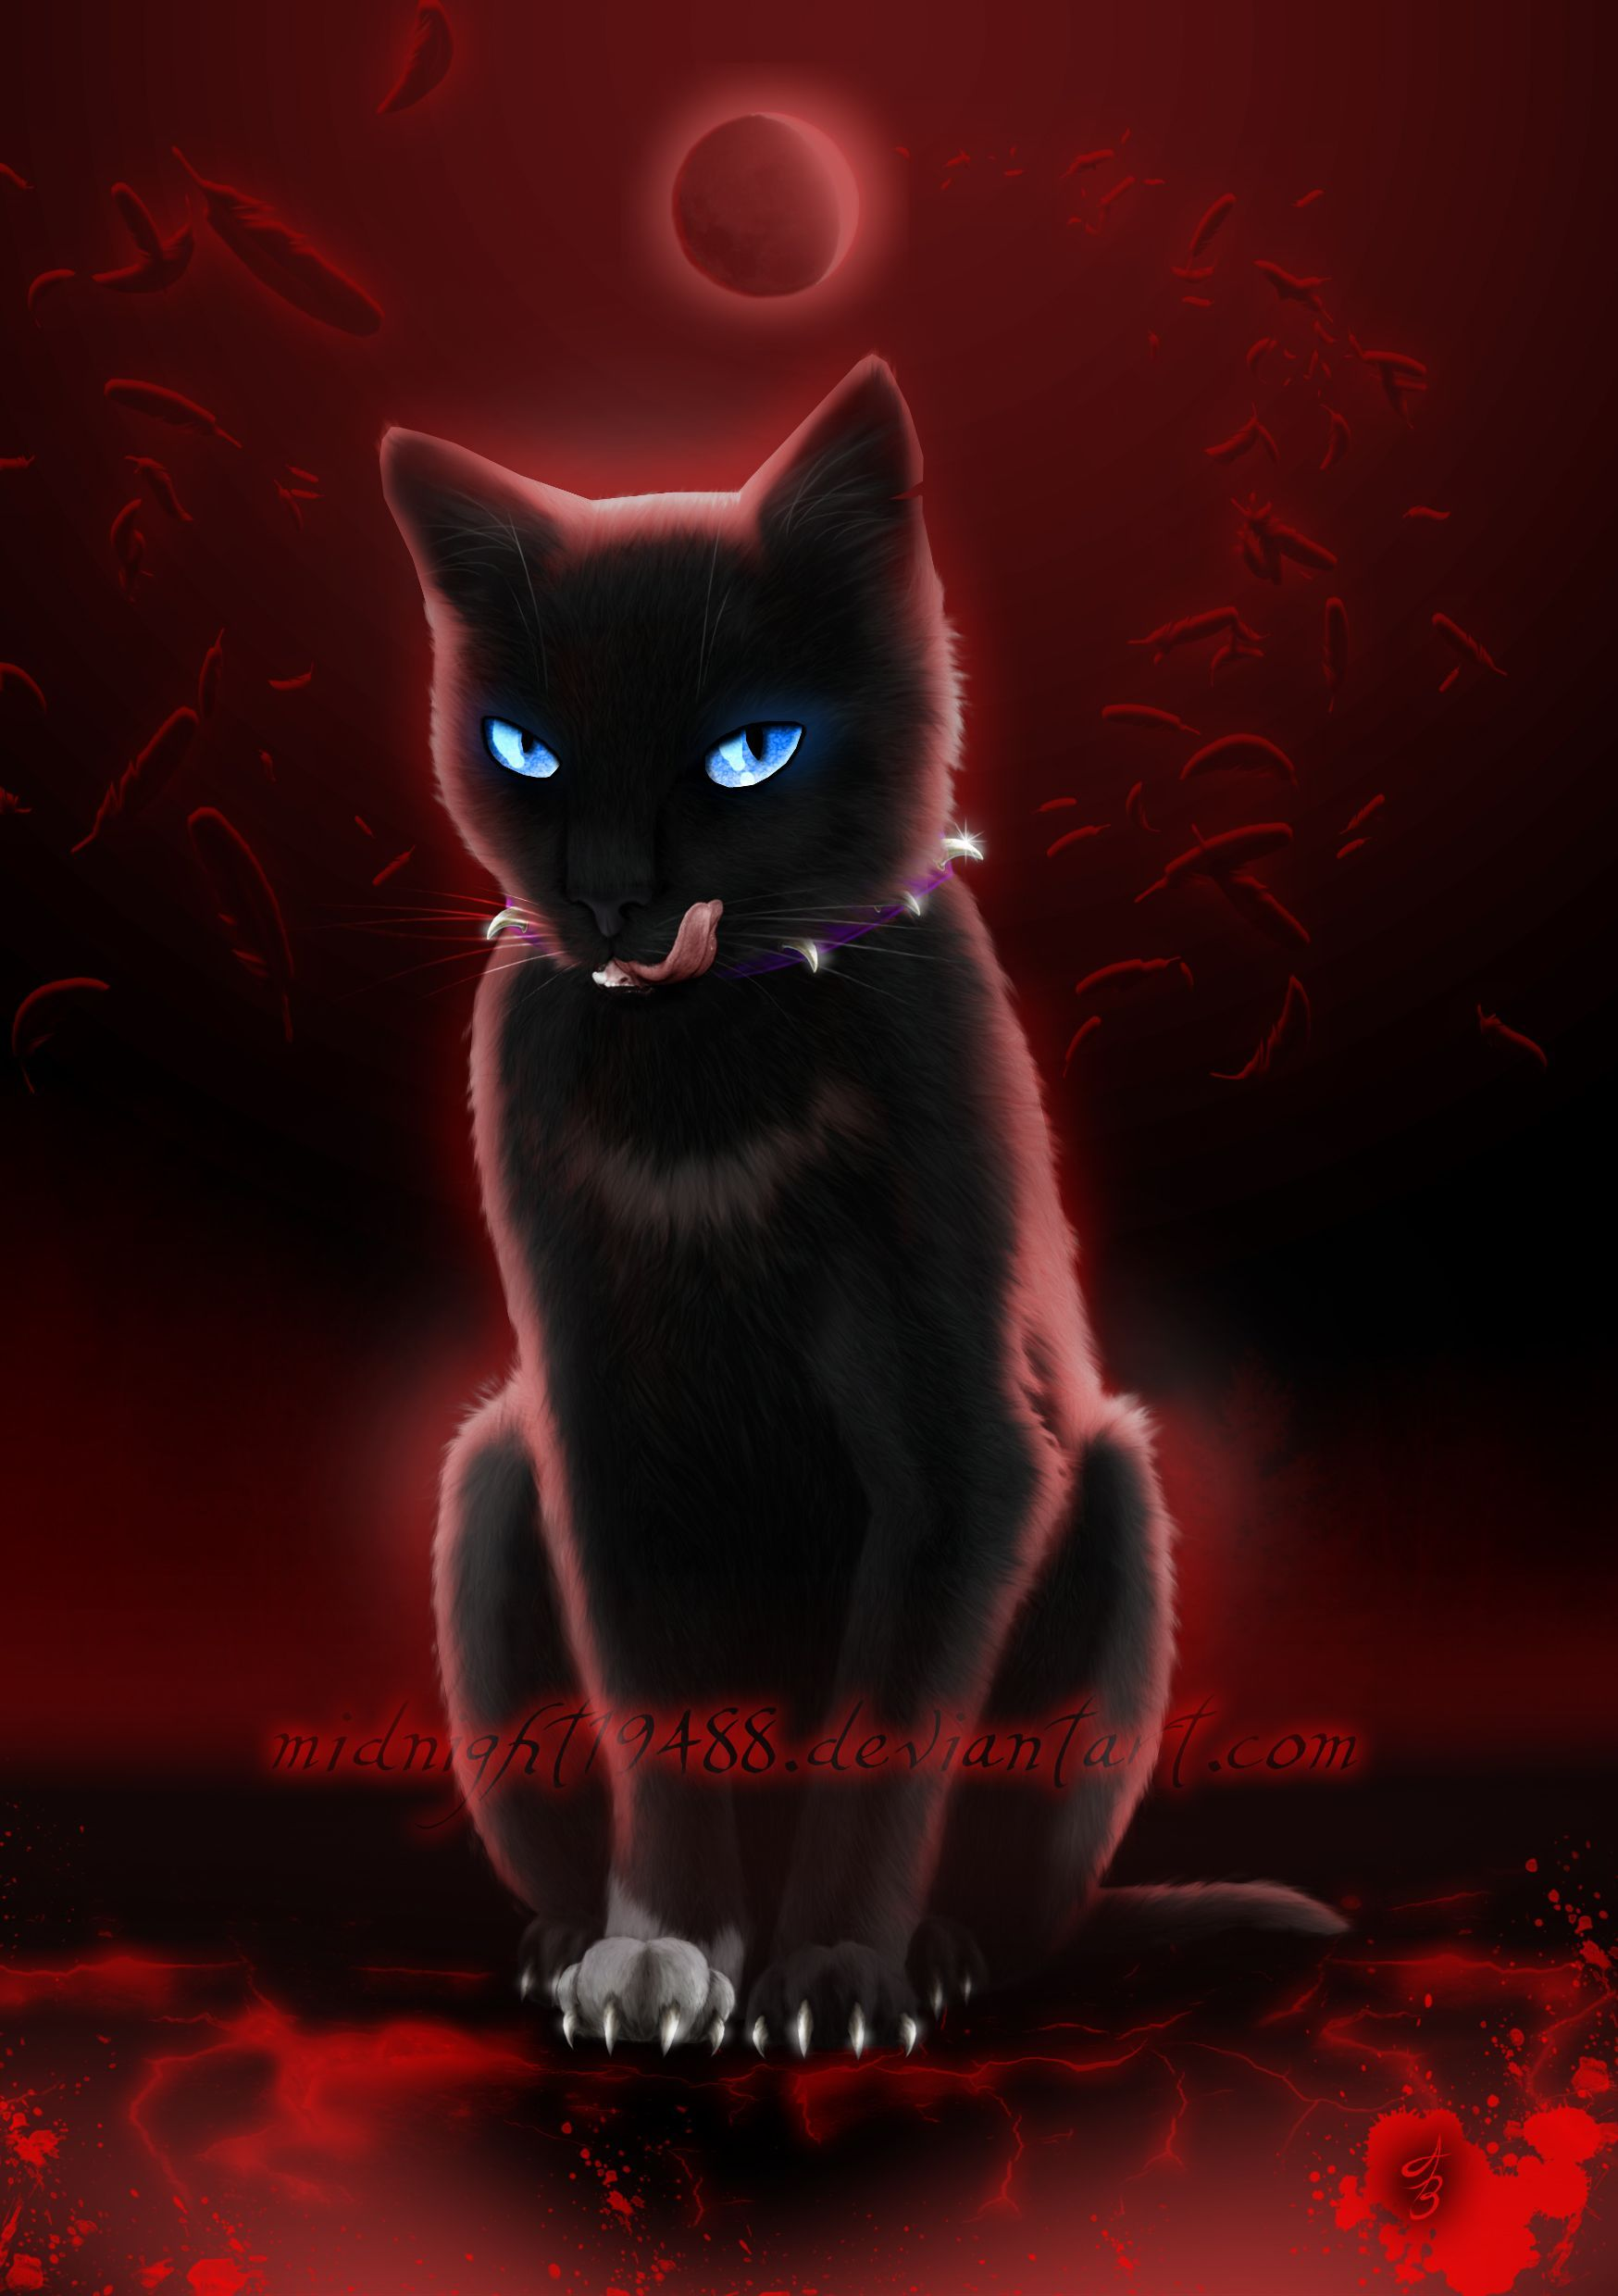 Warrior Cats Wallpapers - Top Free Warrior Cats Backgrounds